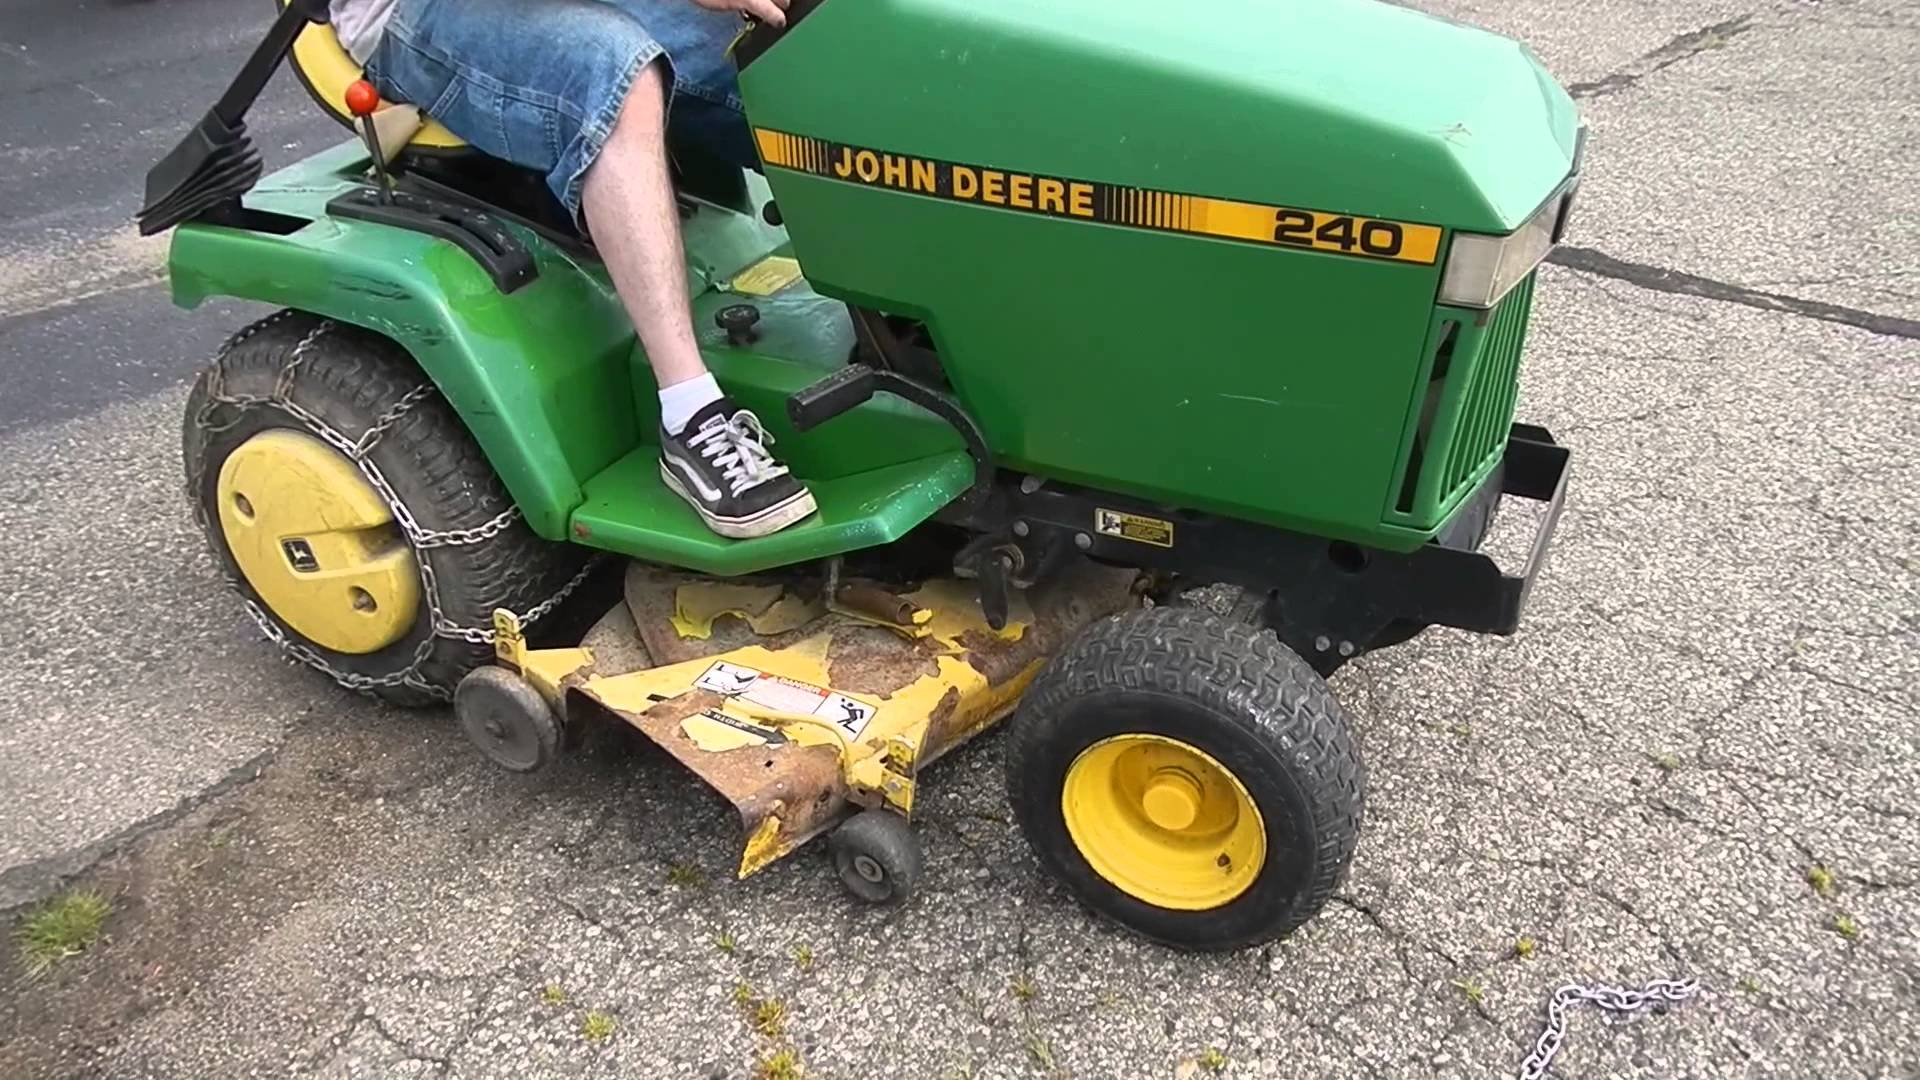 John Deere Mt Wiring Diagram furthermore Wiring Diagram For John Deere 2520 furthermore File John Deere 3350 tractor cut transmission together with JR74534 0000232 19 20100210 also 7zwhy Does Fuel Pump 345 John Deere Lawn Tractor Not Pumping. on john deere 2550 wiring diagram